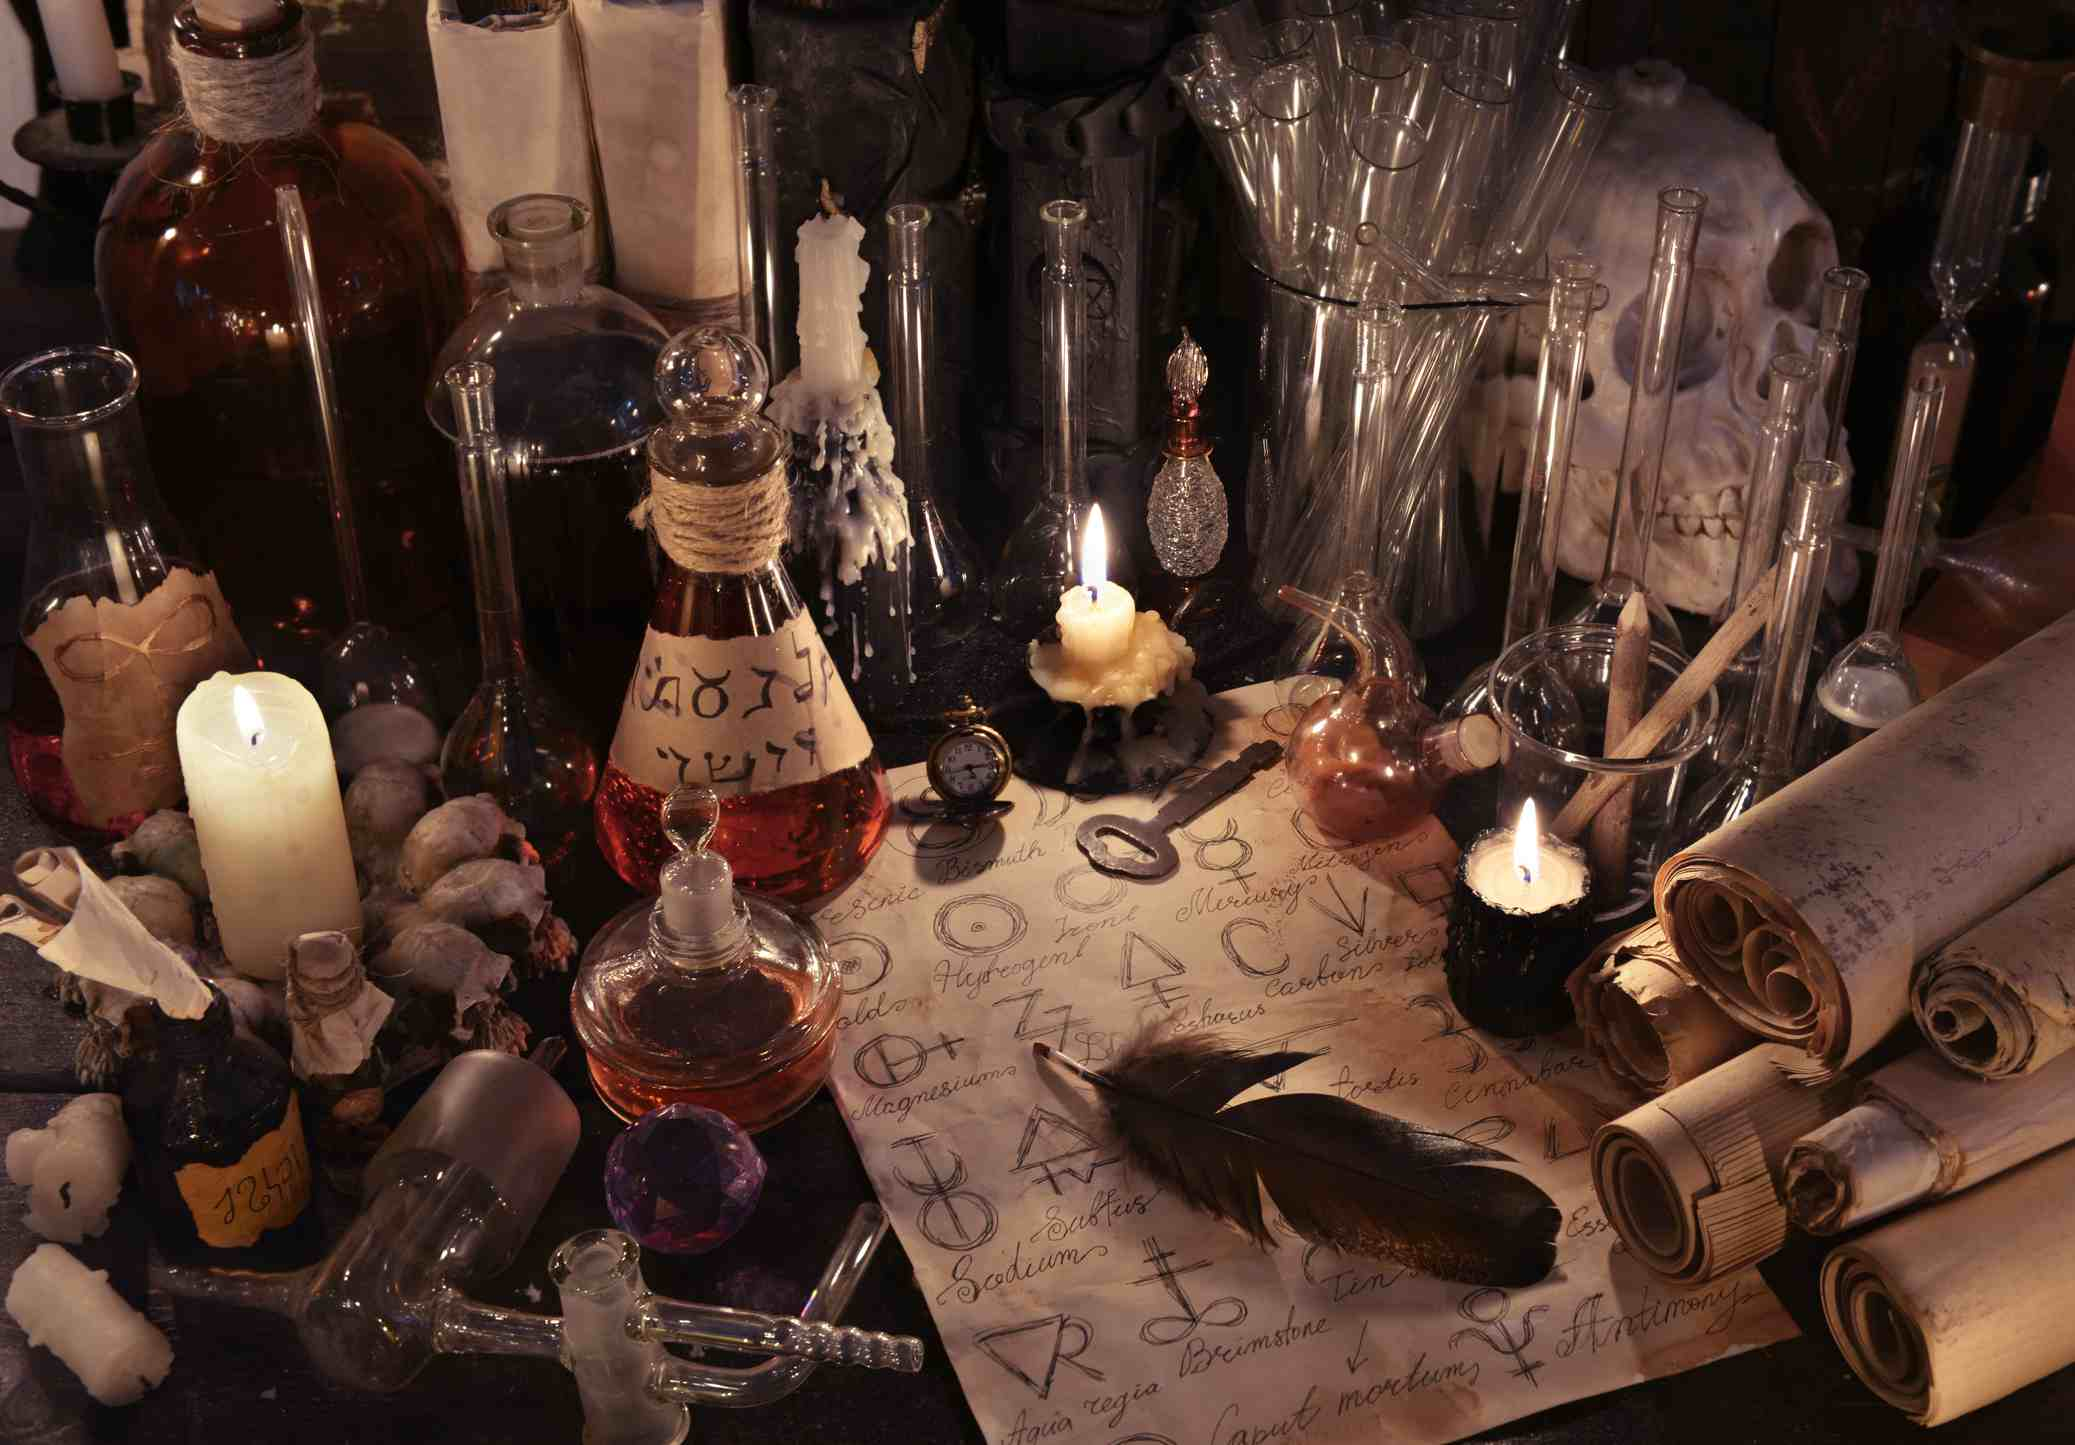 Mystic still life with alchemy paper, bottles and candles